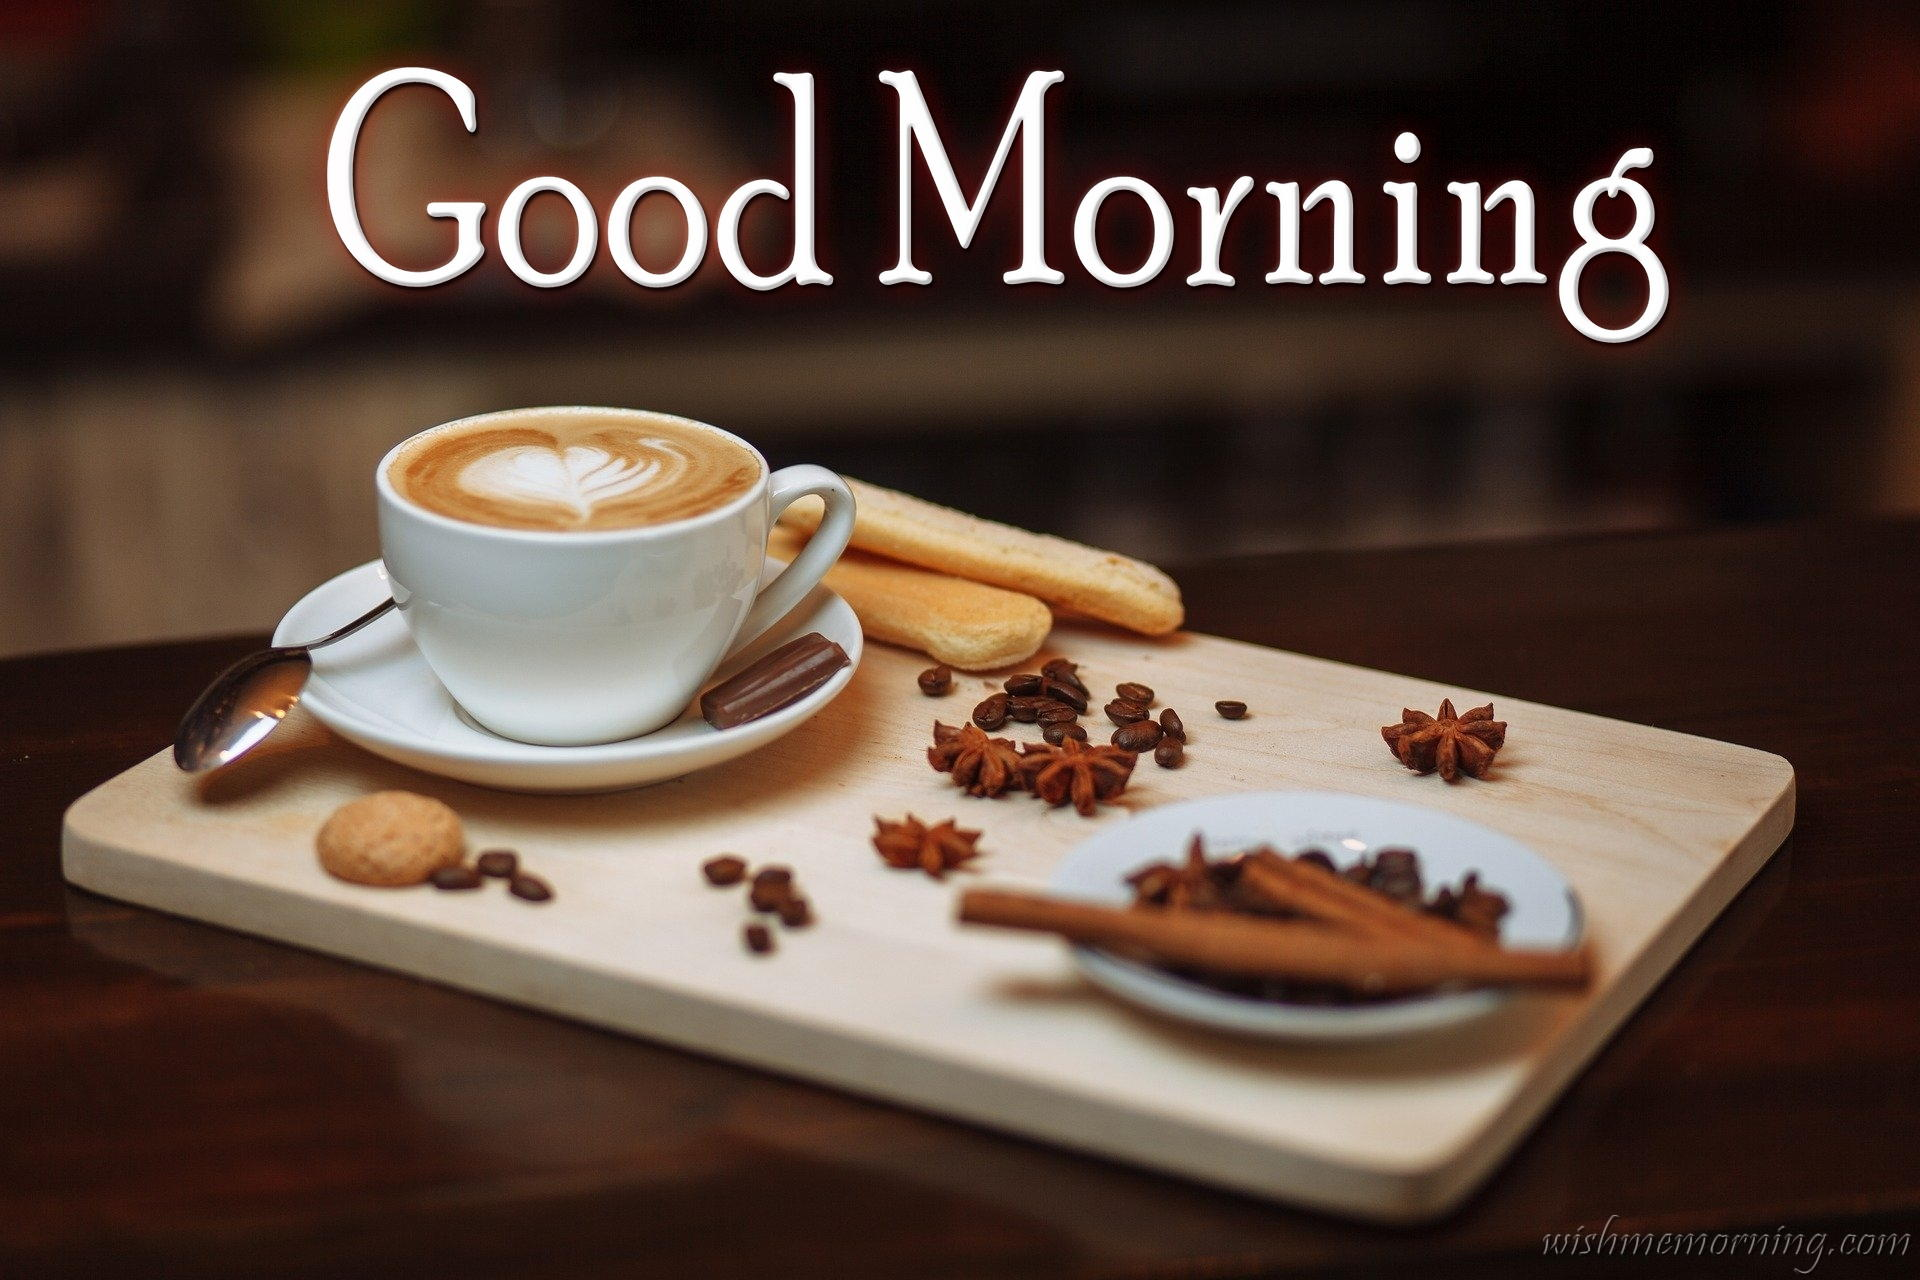 Coffee Cup Cream with Snacks Good Morning in Tray